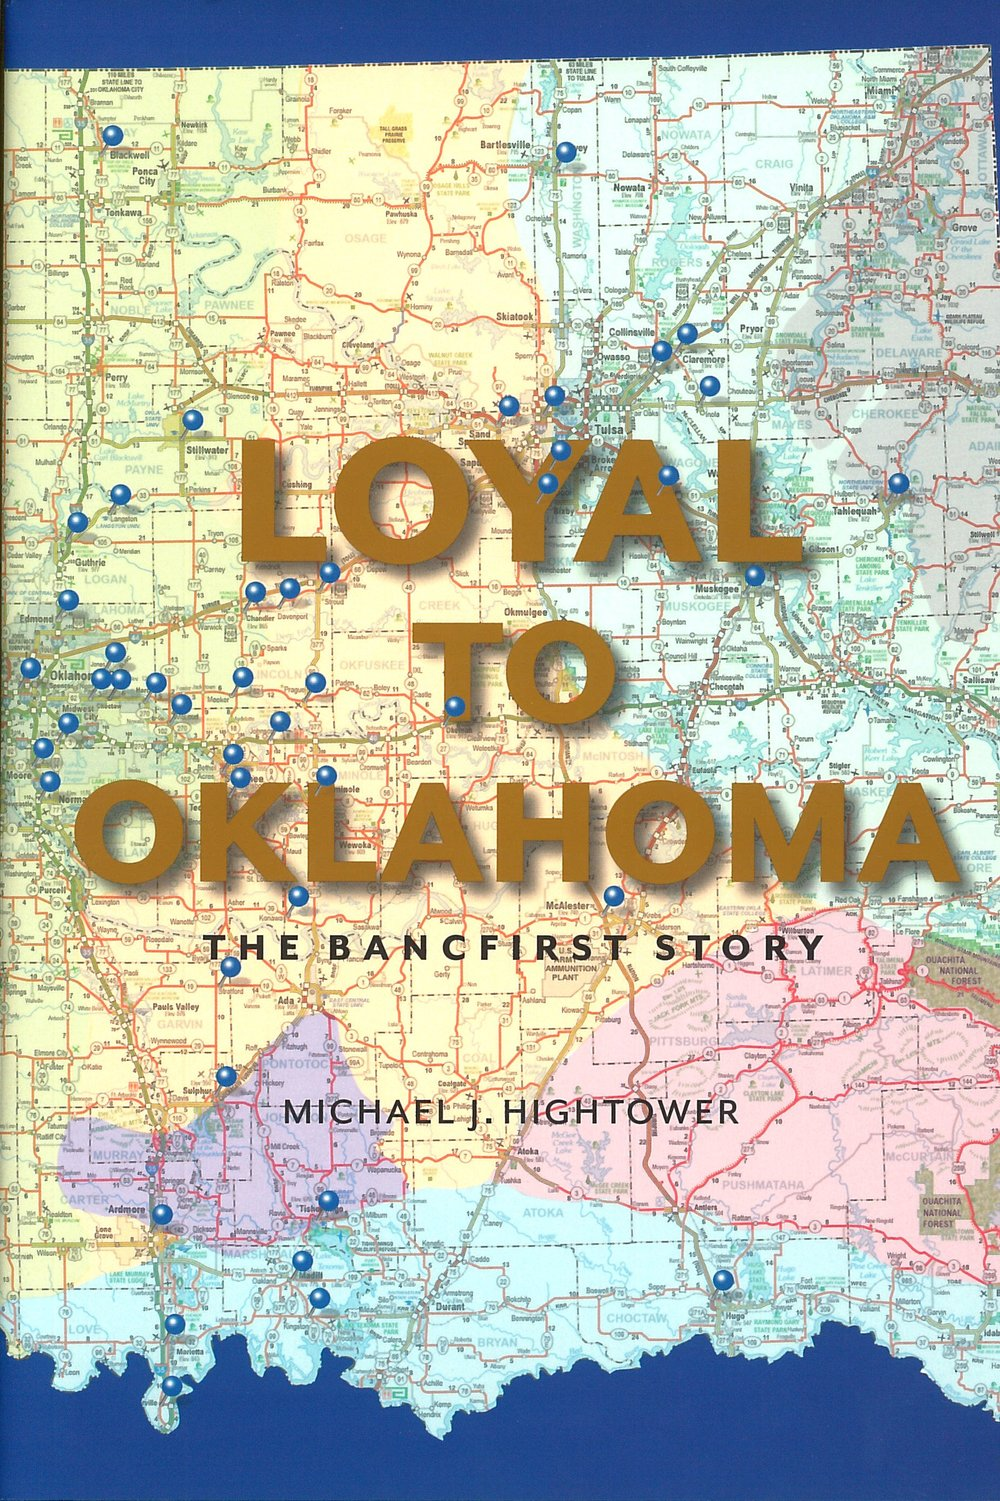 Loyal to Oklahoma 09-13-2018.jpg